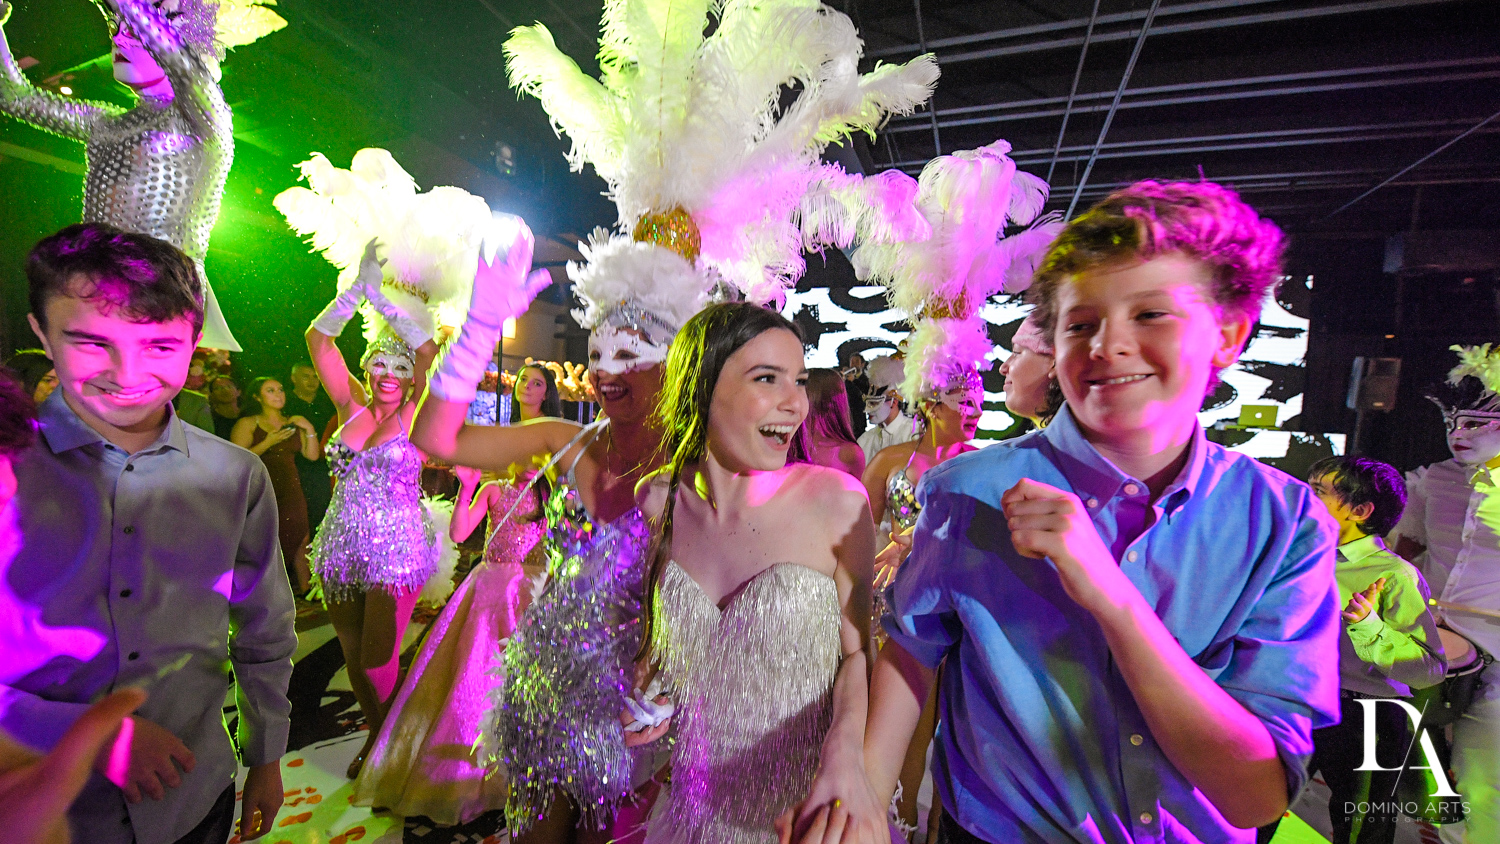 feathered performers at Fashion Theme Bat Mitzvah at Gallery of Amazing Things by Domino Arts Photography